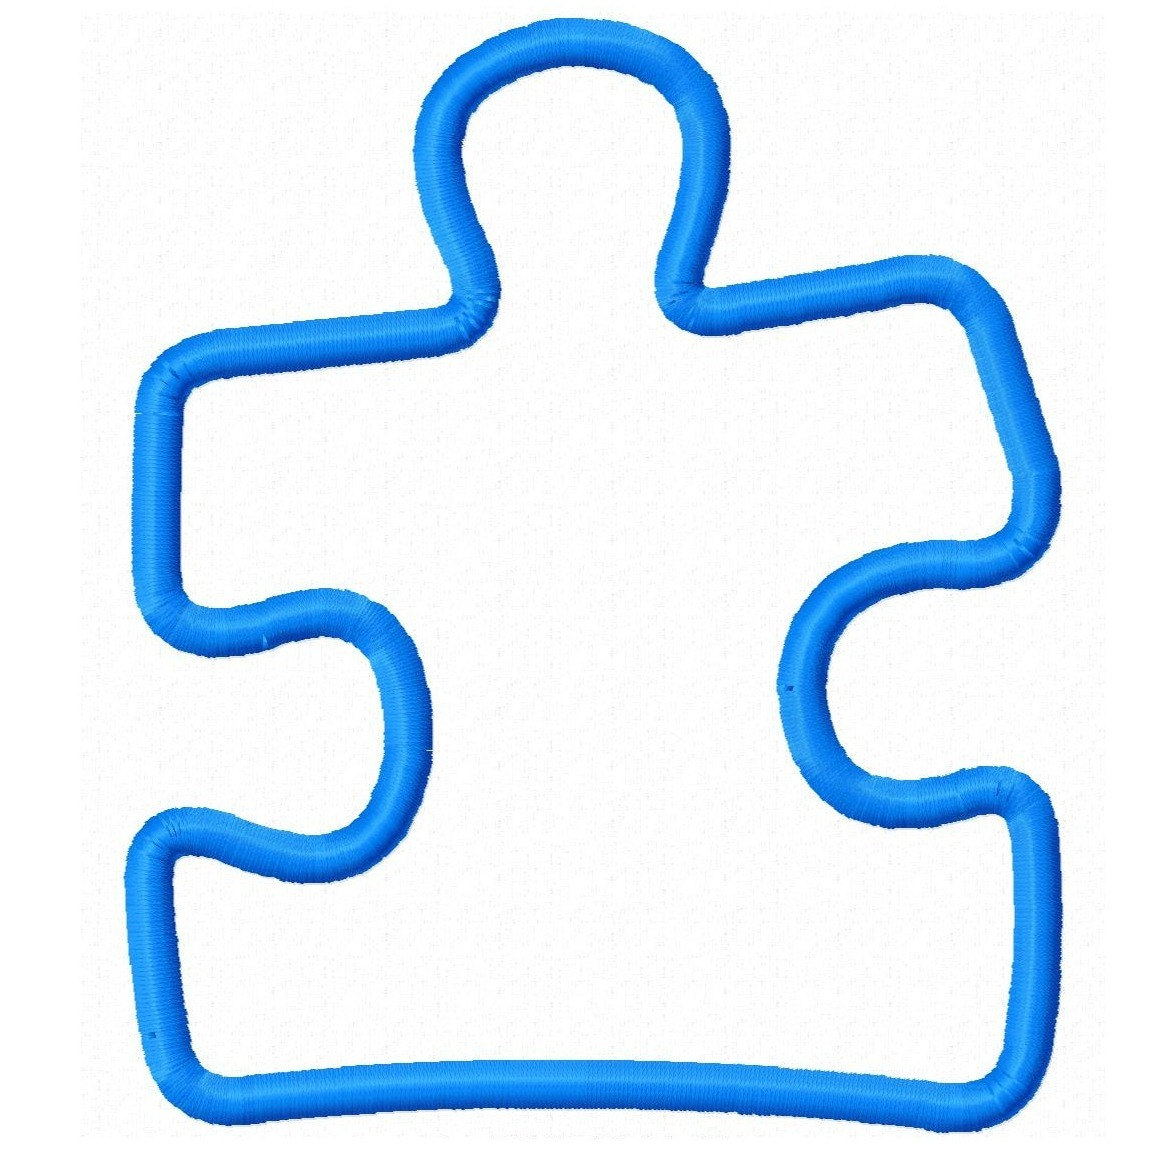 Puzzle Piece Clipart | Free Download Best Puzzle Piece Clipart On - Printable Puzzle Piece Autism